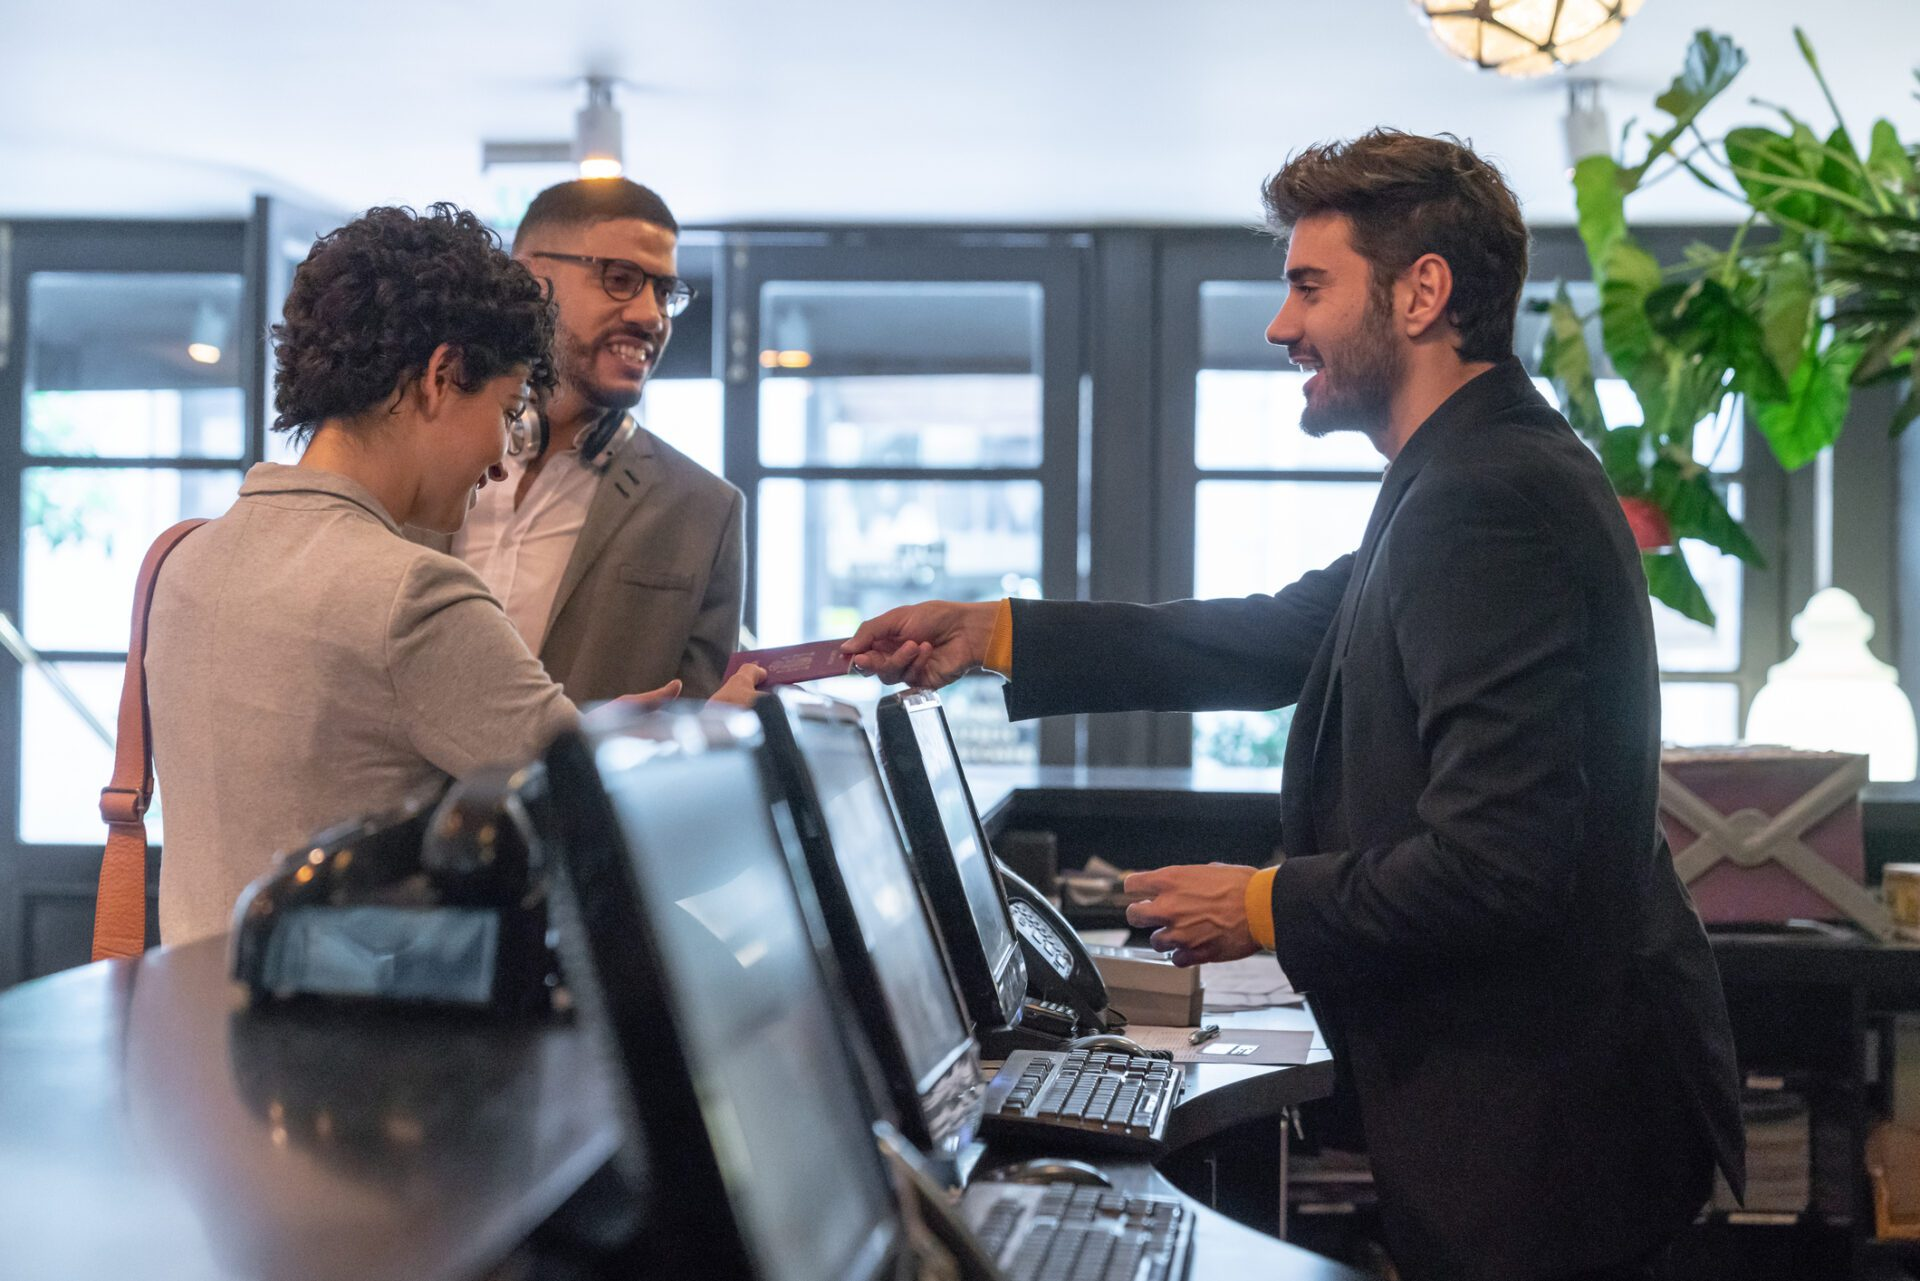 hotel front desk employee demonstrating knowledge management in hospitality industry